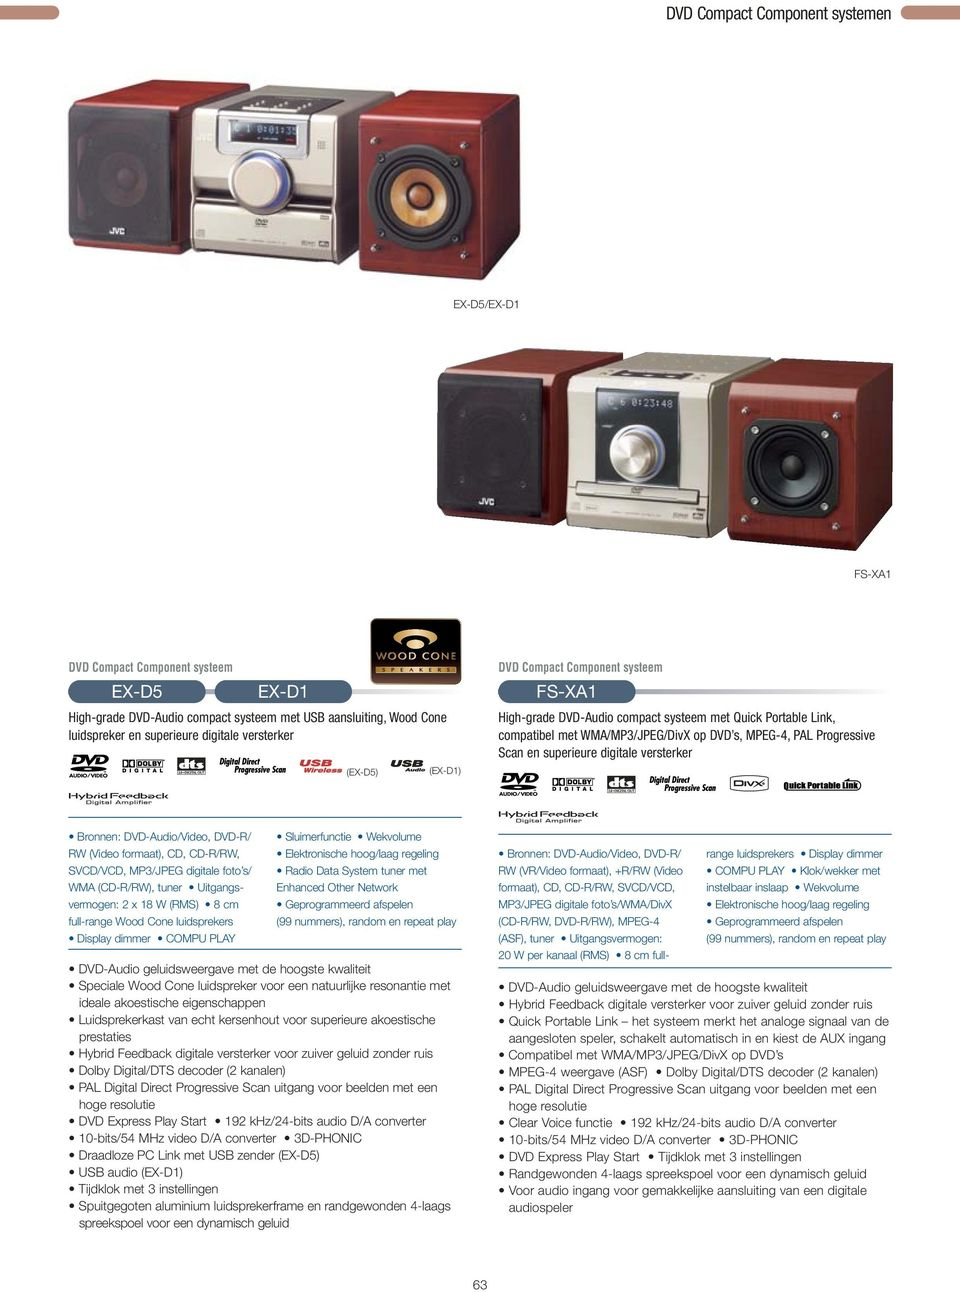 en superieure digitale versterker Bronnen: DVD-Audio/Video, DVD-R/ RW (Video formaat), CD, CD-R/RW, SVCD/VCD, MP3/JPEG digitale foto s/ WMA (CD-R/RW), tuner Uitgangsvermogen: 2 x 18 W (RMS) 8 cm